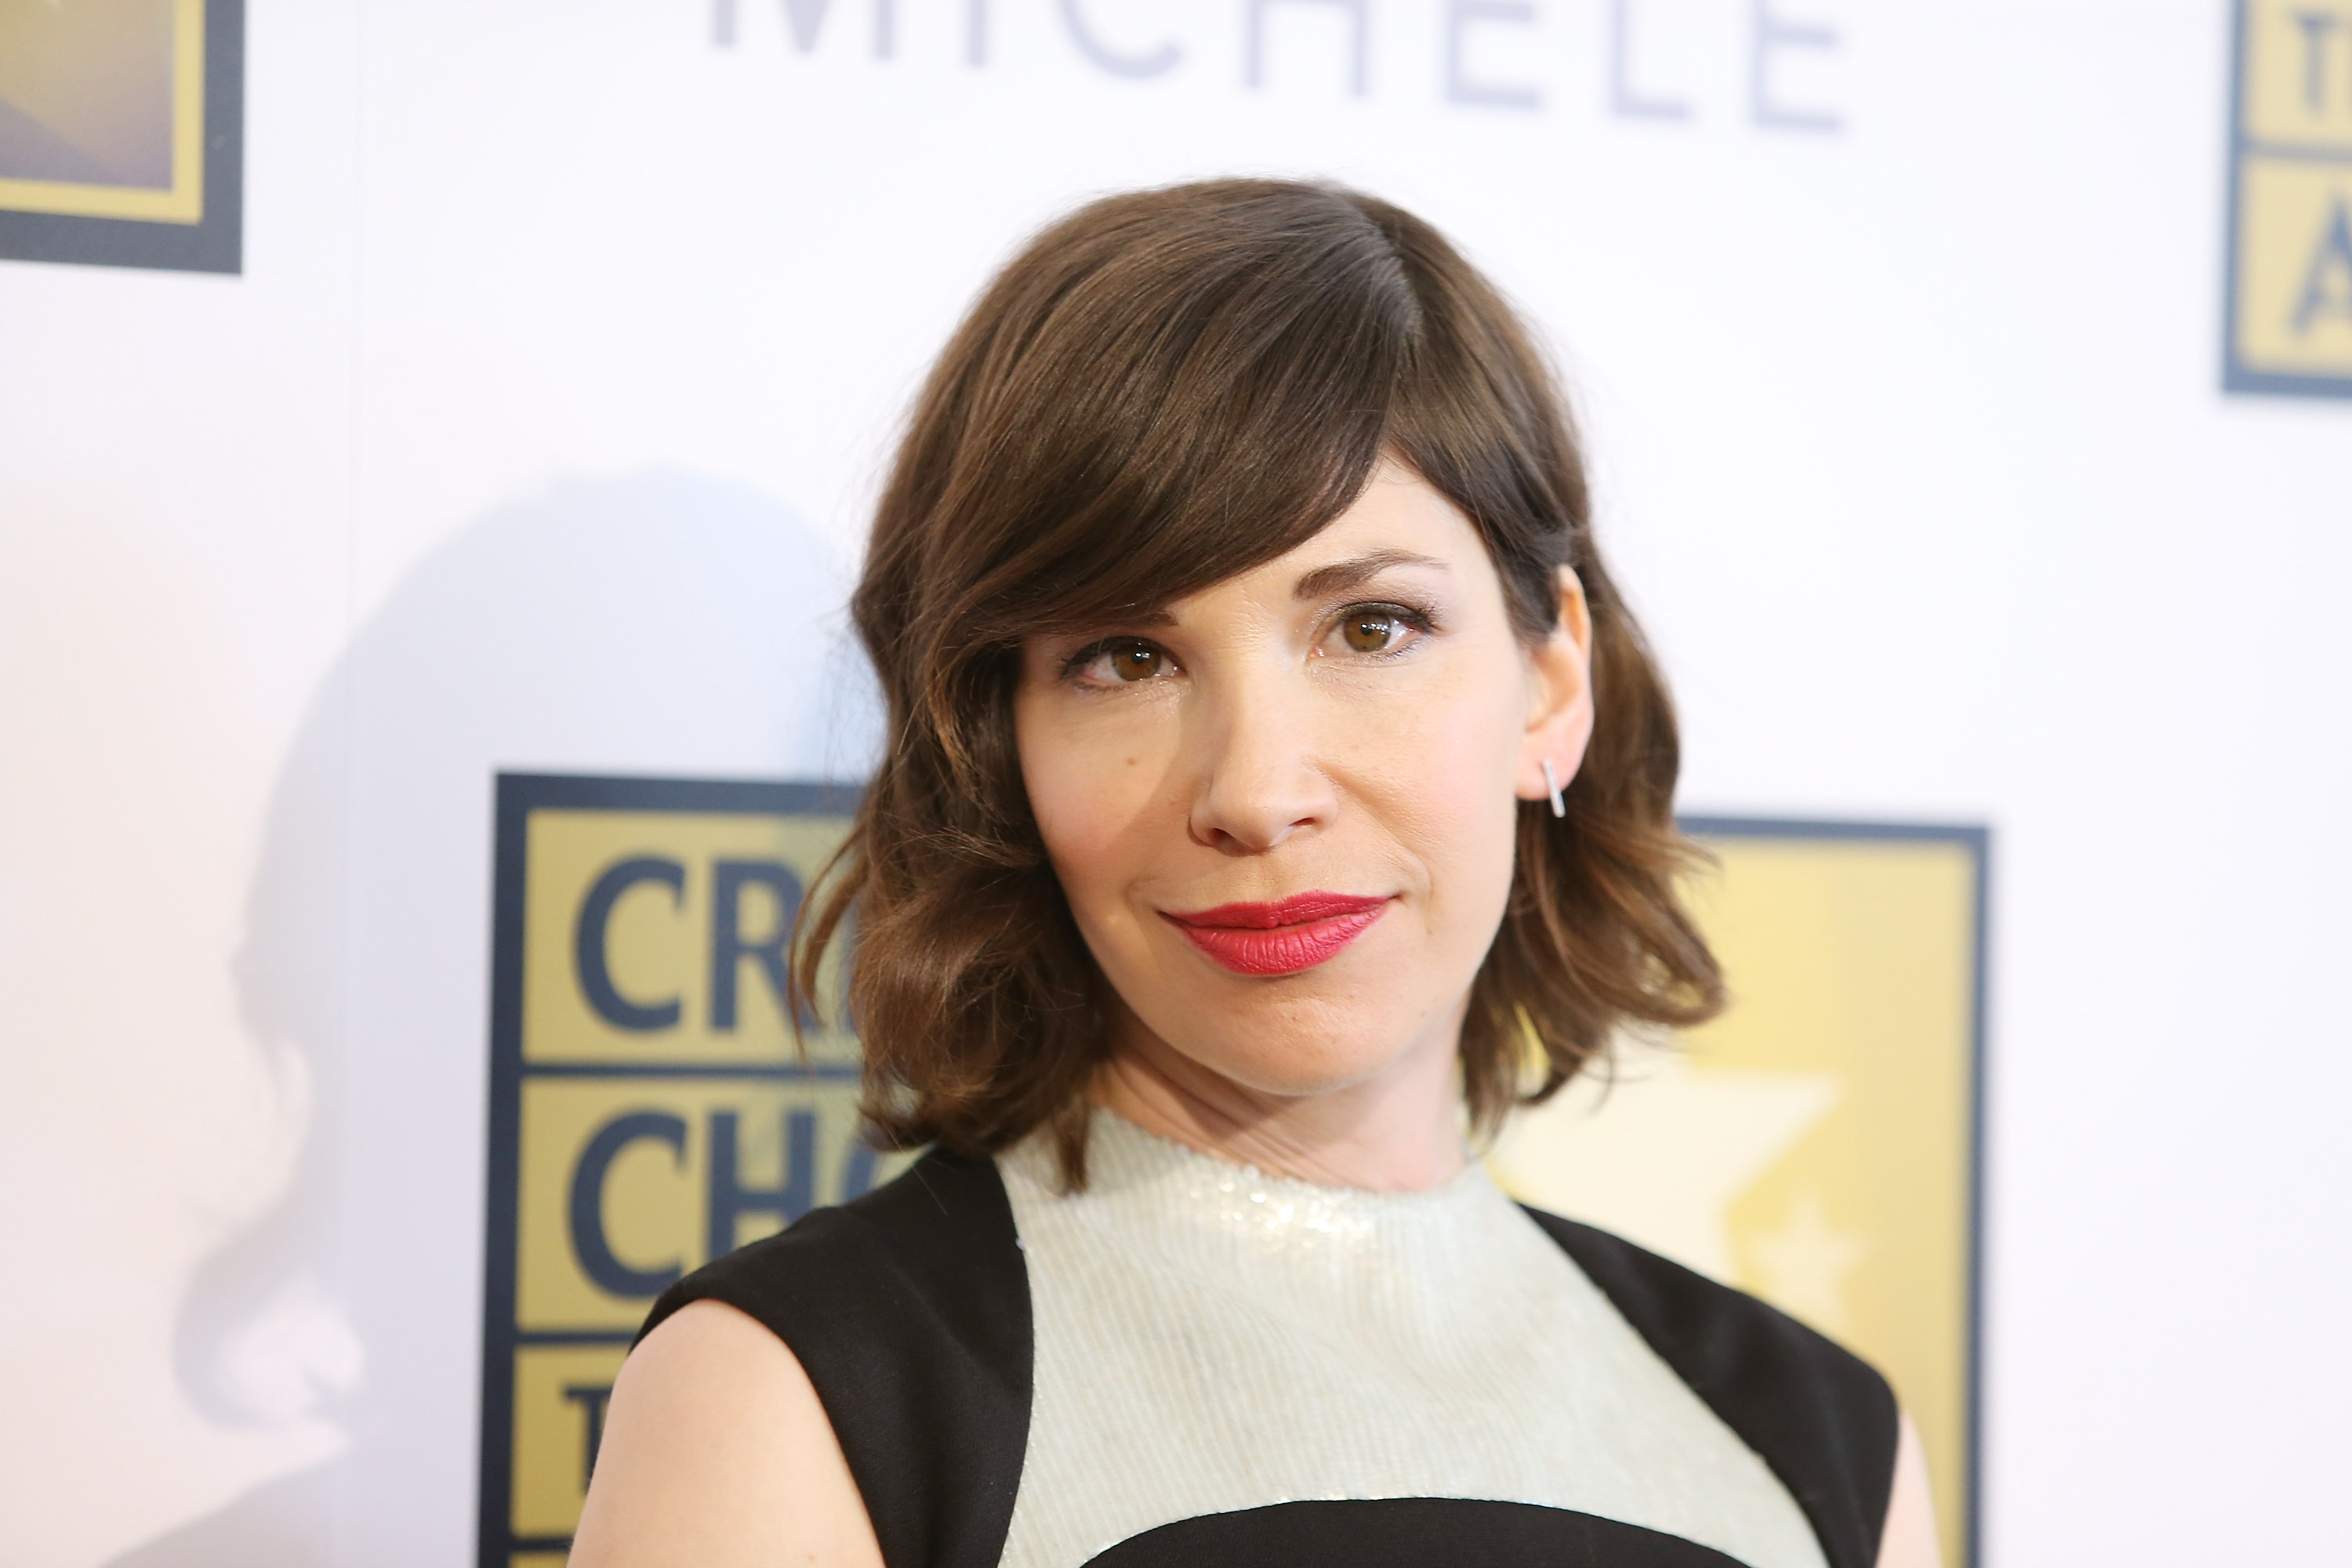 Carrie Brownstein attends the press room at the 4th Annual Critics' Choice Television Awards held at The Beverly Hilton Hotel on June 19, 2014 in Beverly Hills, California.